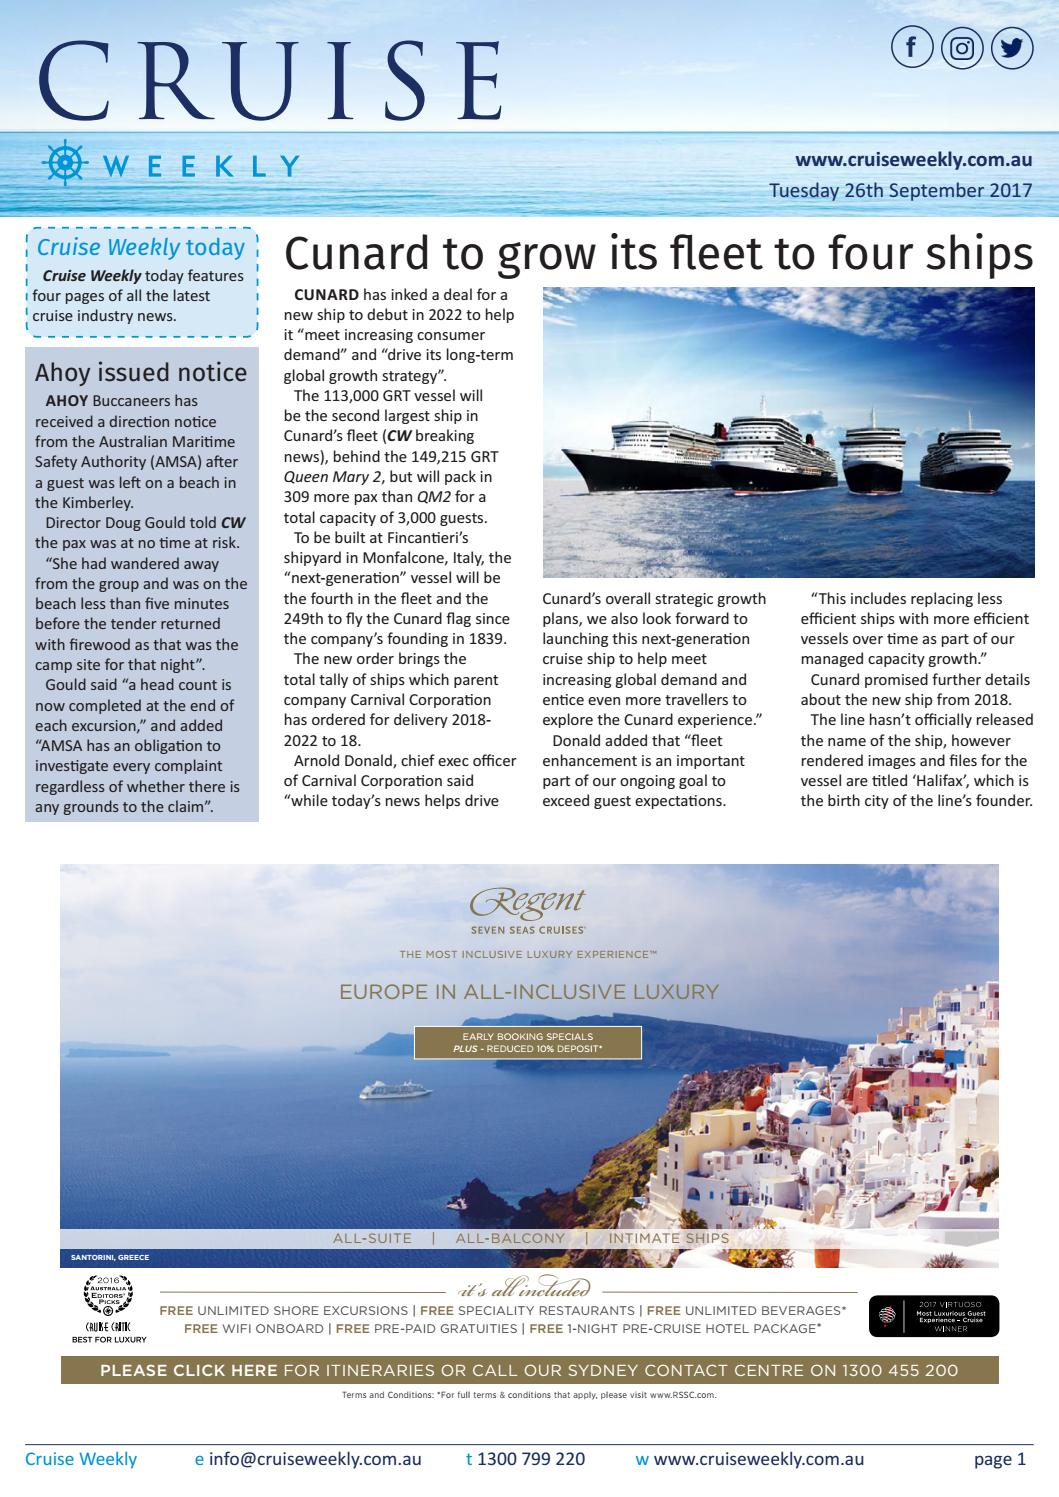 CW for Tue 26 Sep 2017 - Cunard orders fourth ship, Princess Cruises